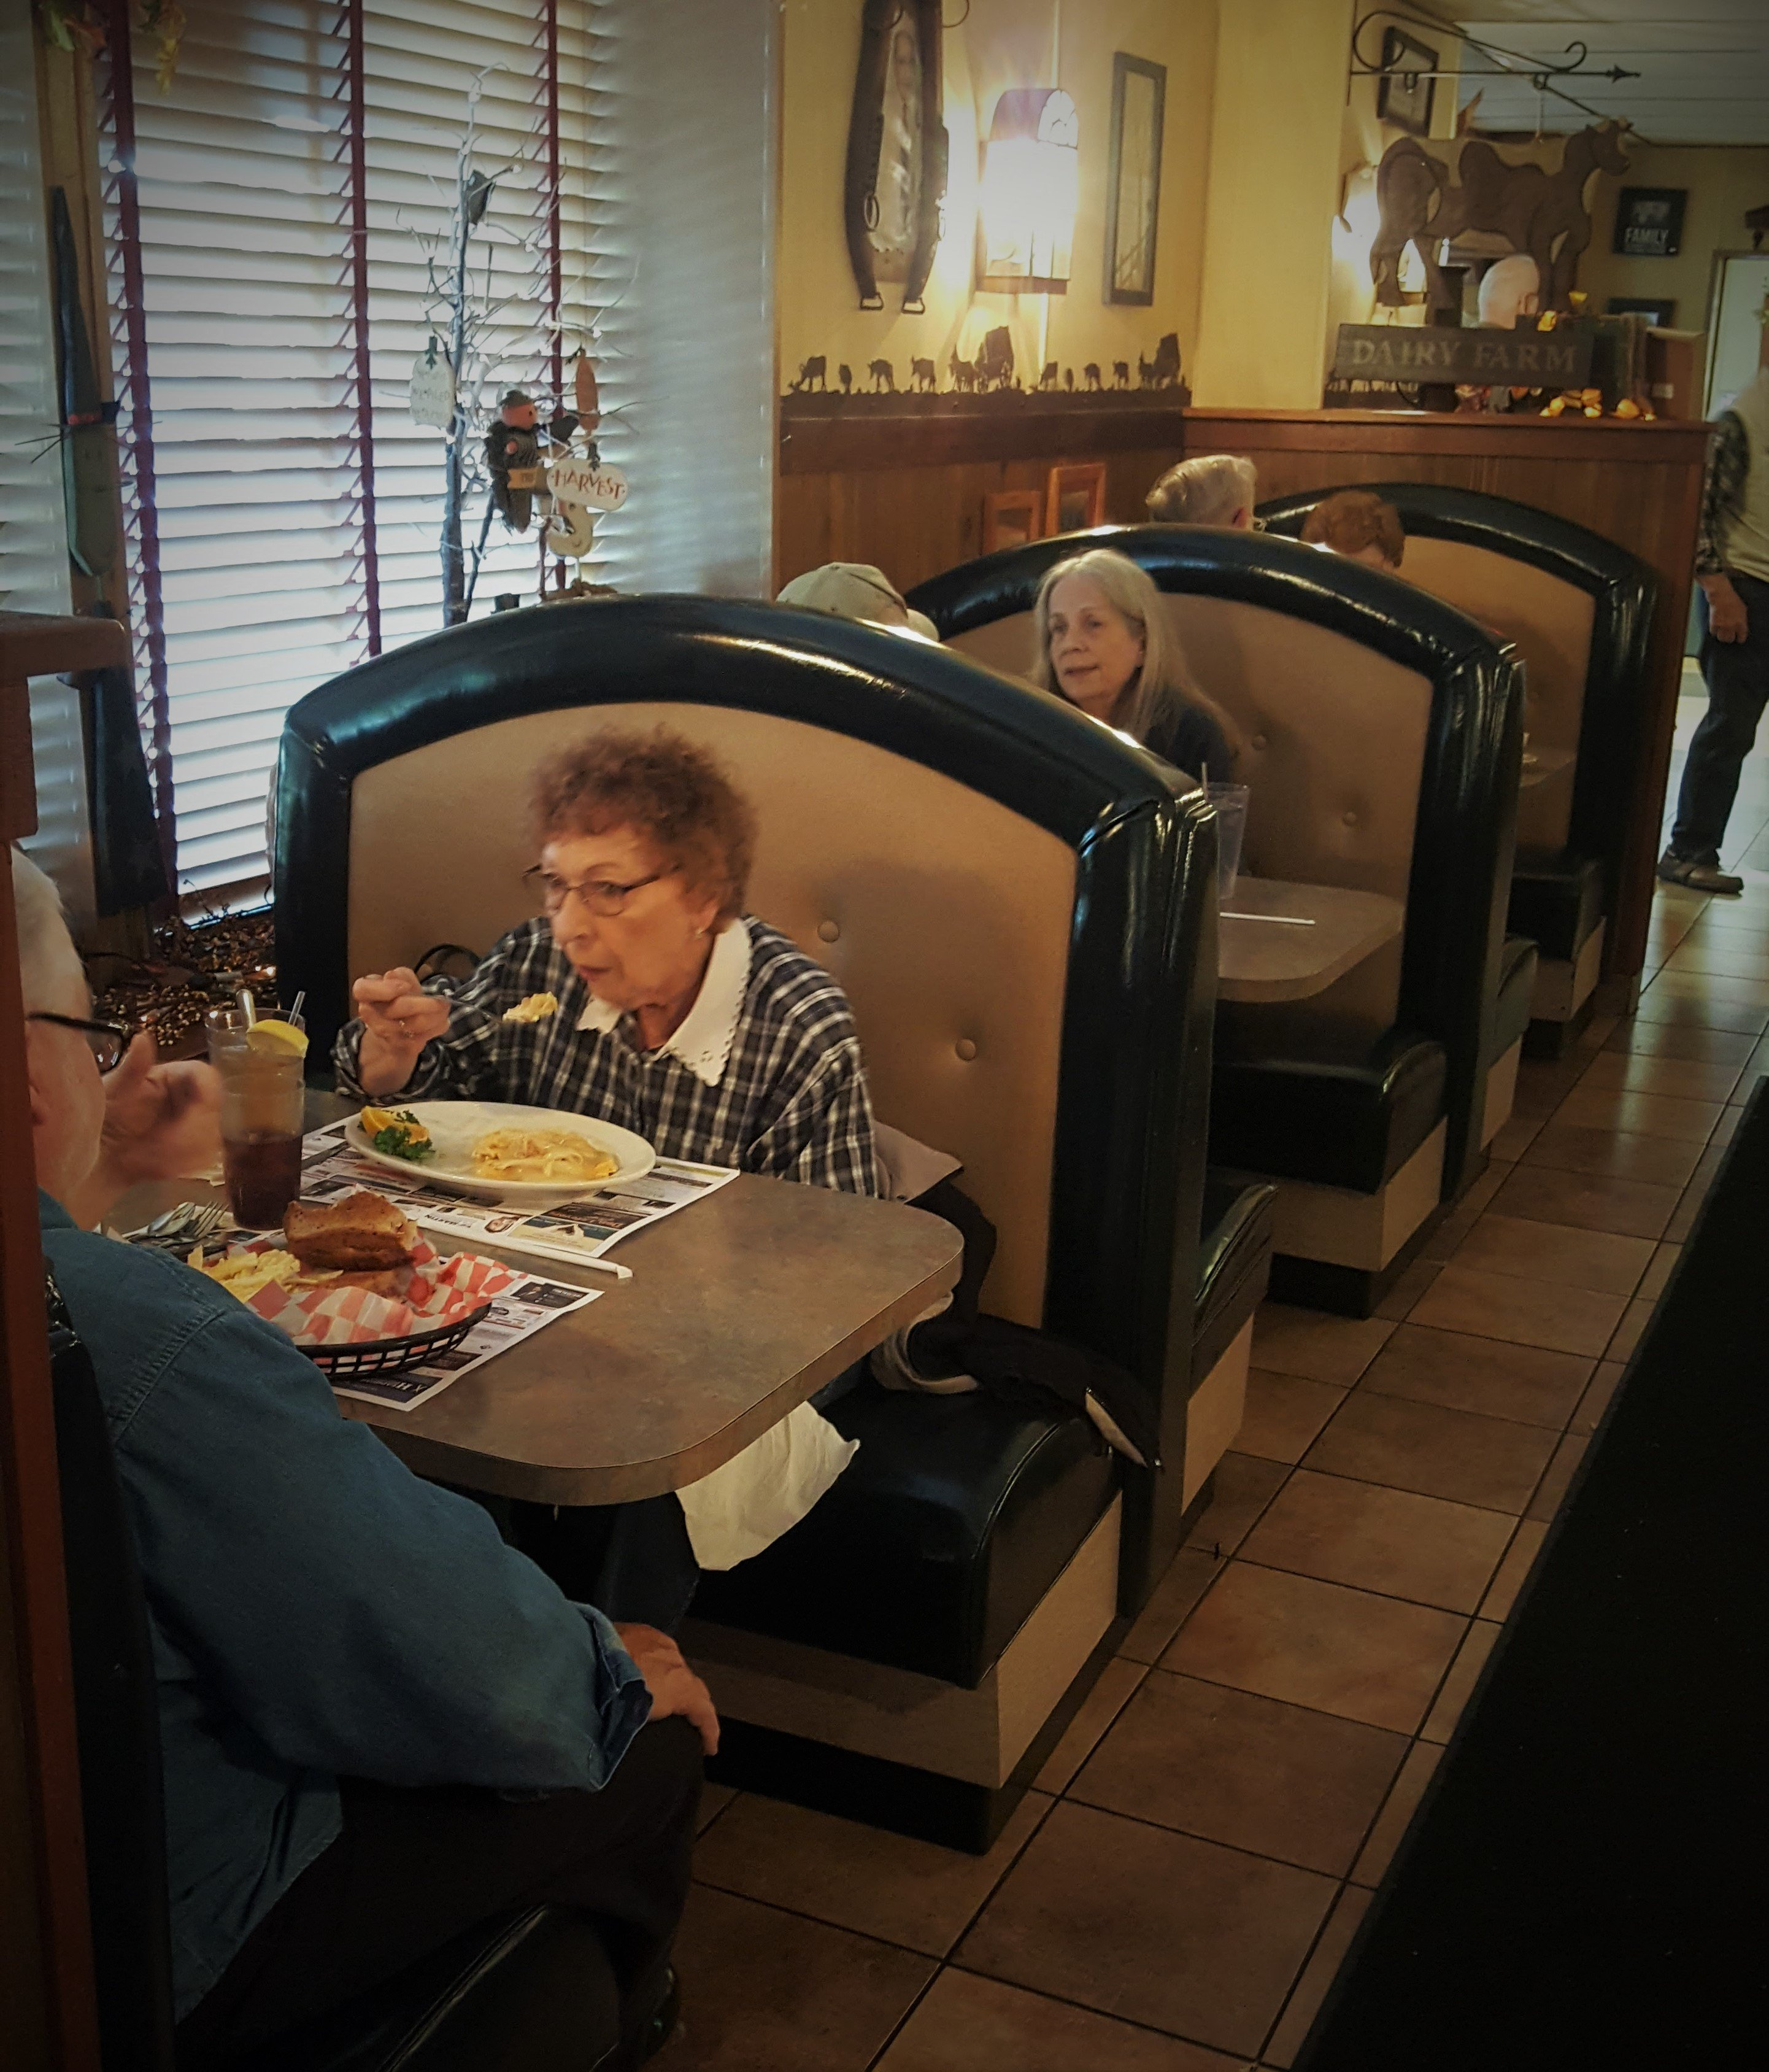 The Conestoga Wagon Restaurant in Lancaster, PA. Serving home cooking and family recipes for over 30 years!